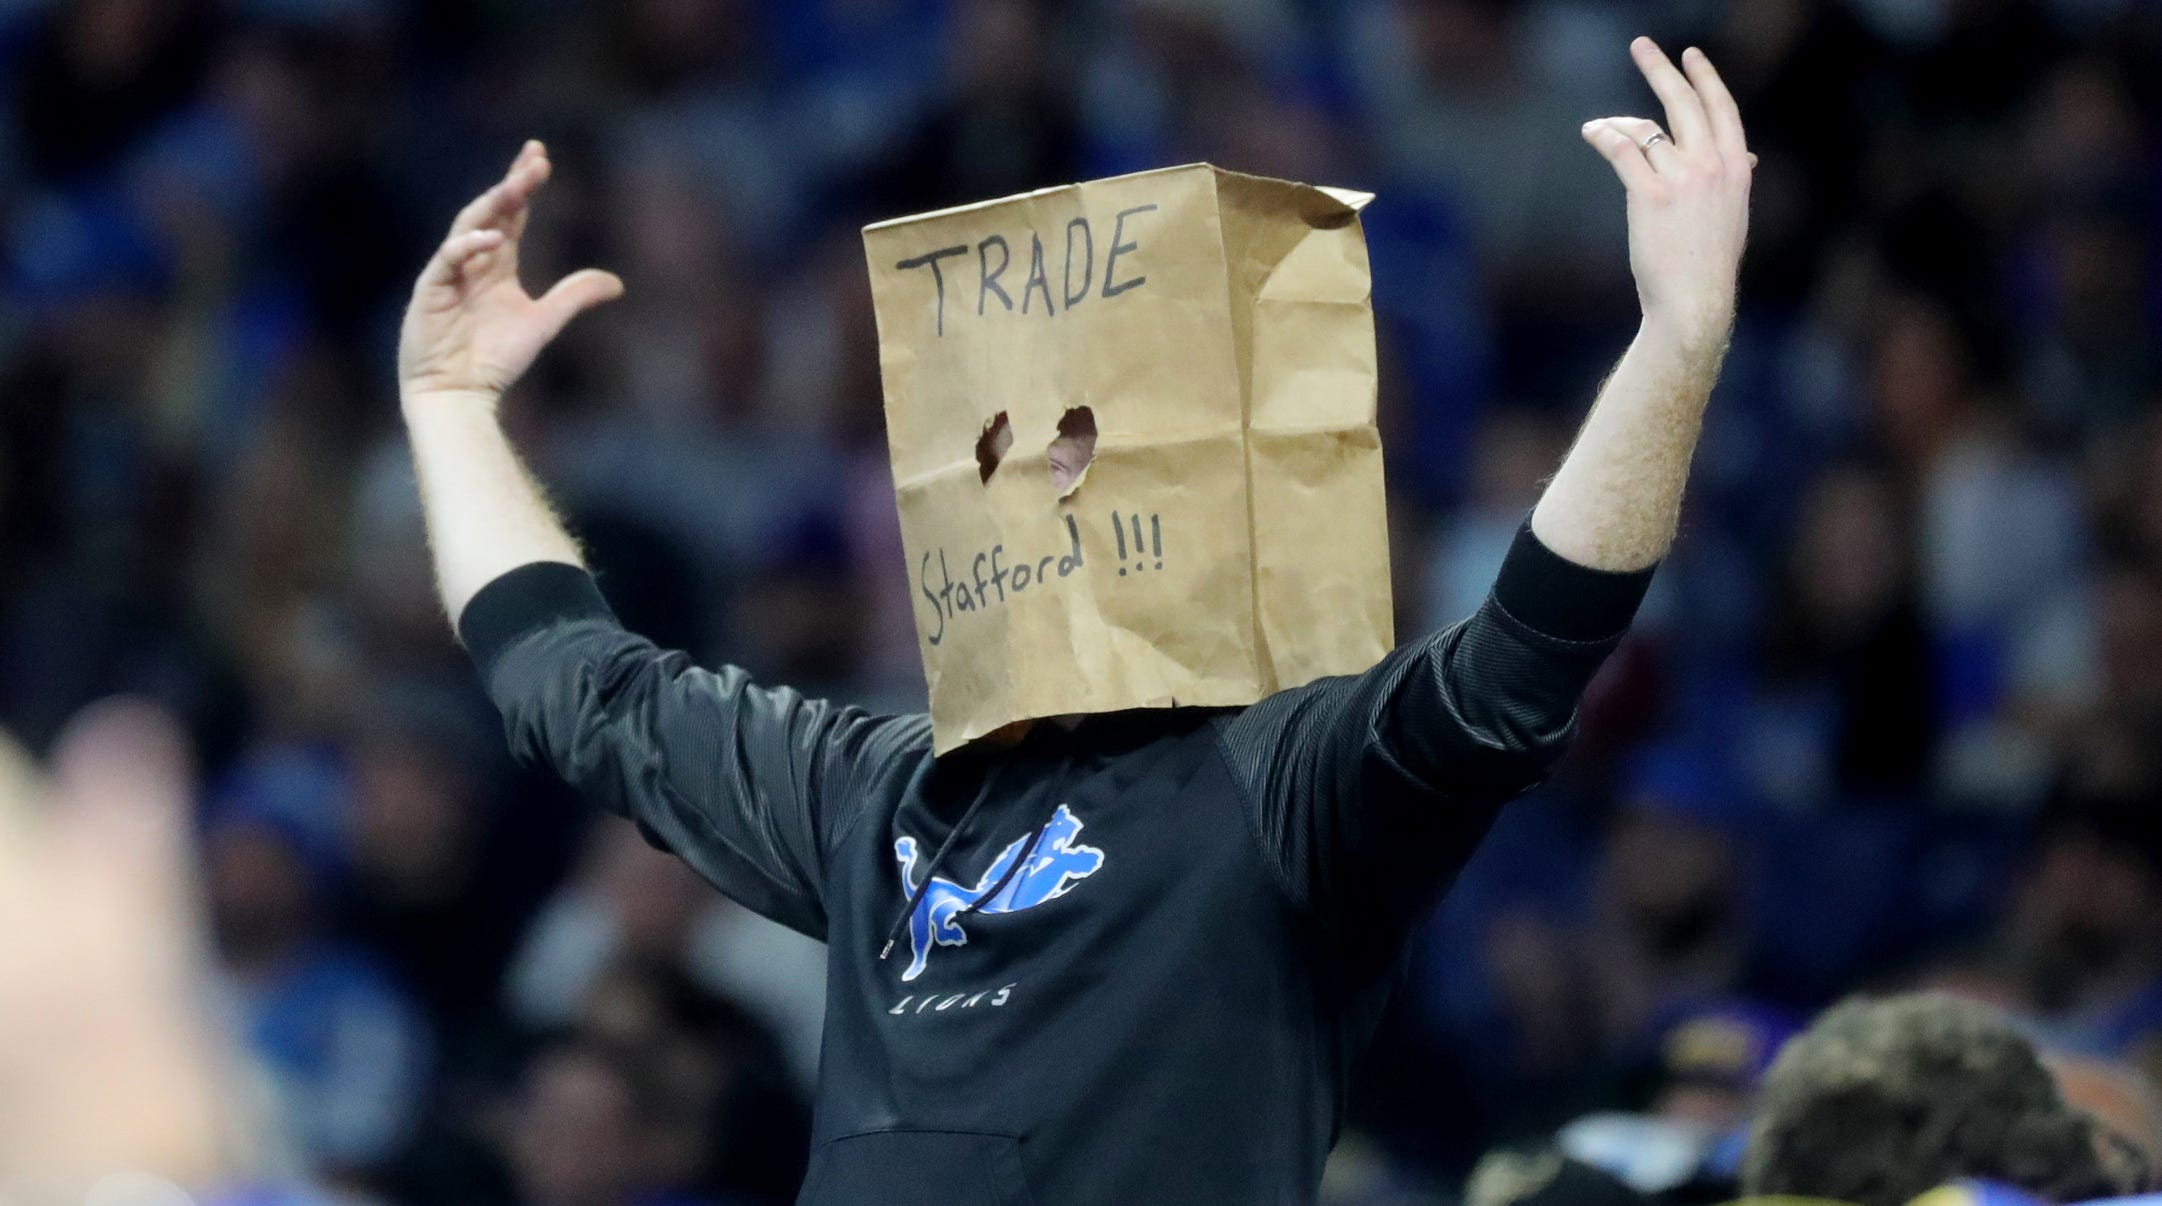 Roses are red, violets are blue ... trade Matthew Stafford?